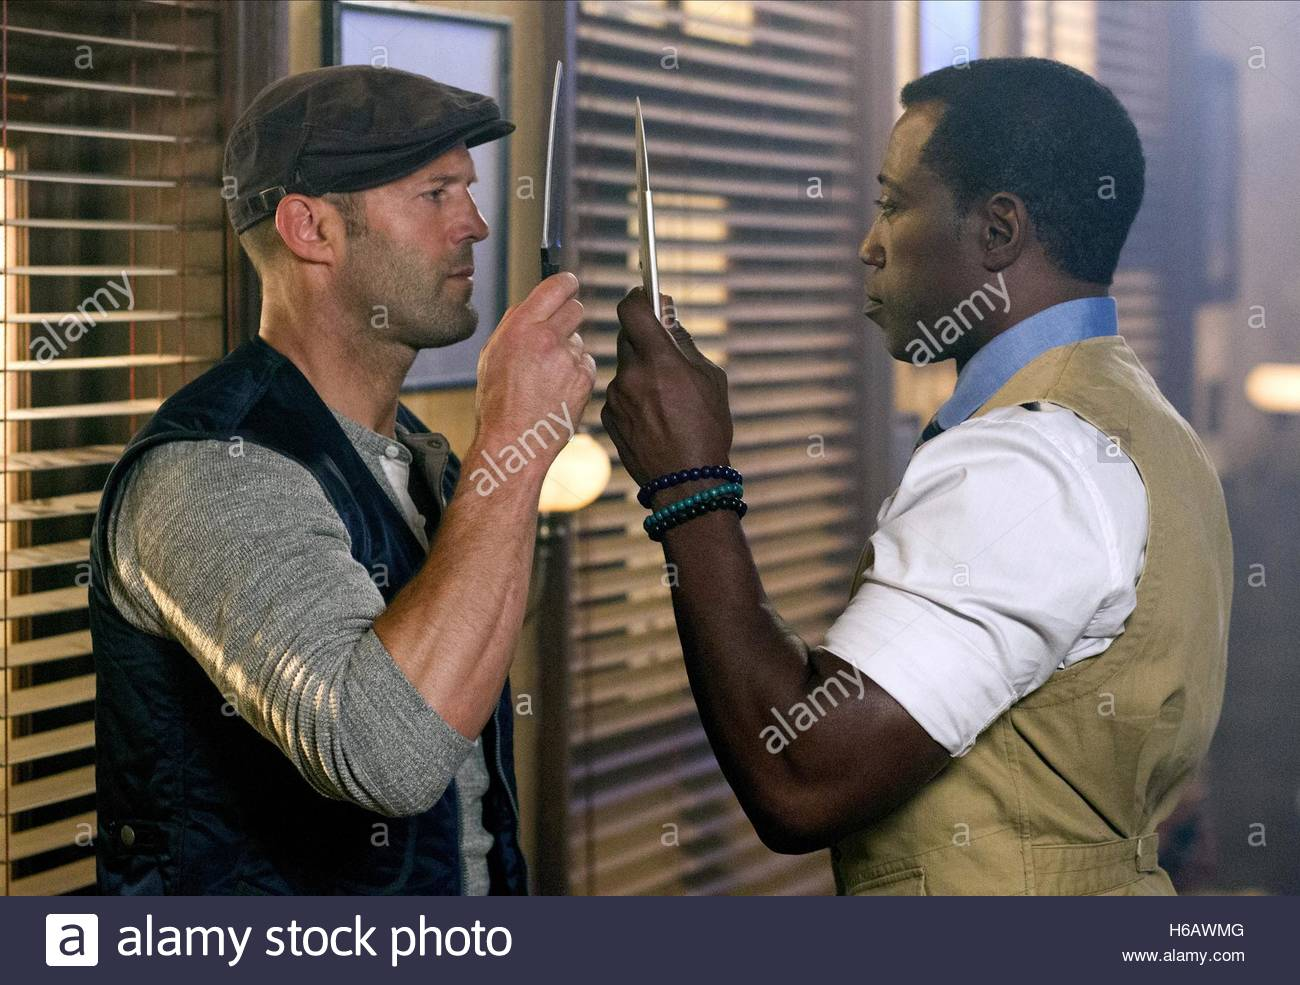 6362c7389f JASON STATHAM   WESLEY SNIPES THE EXPENDABLES 3 (2014 Stock Photo ...